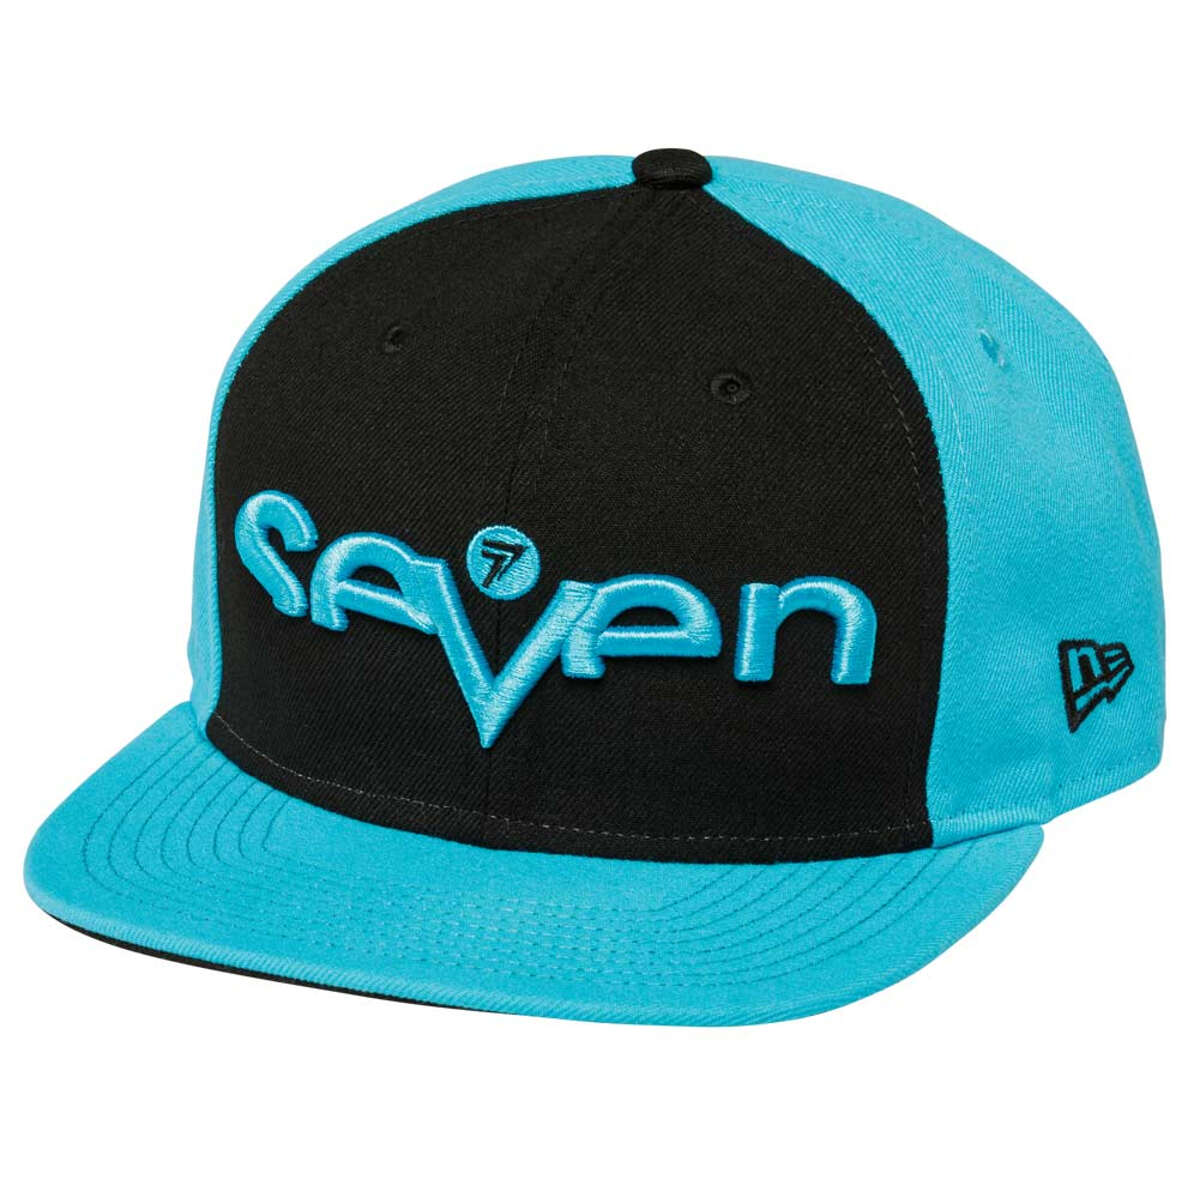 1220001-014 Seven MX brand hat cap black light blue casquette pet kappe